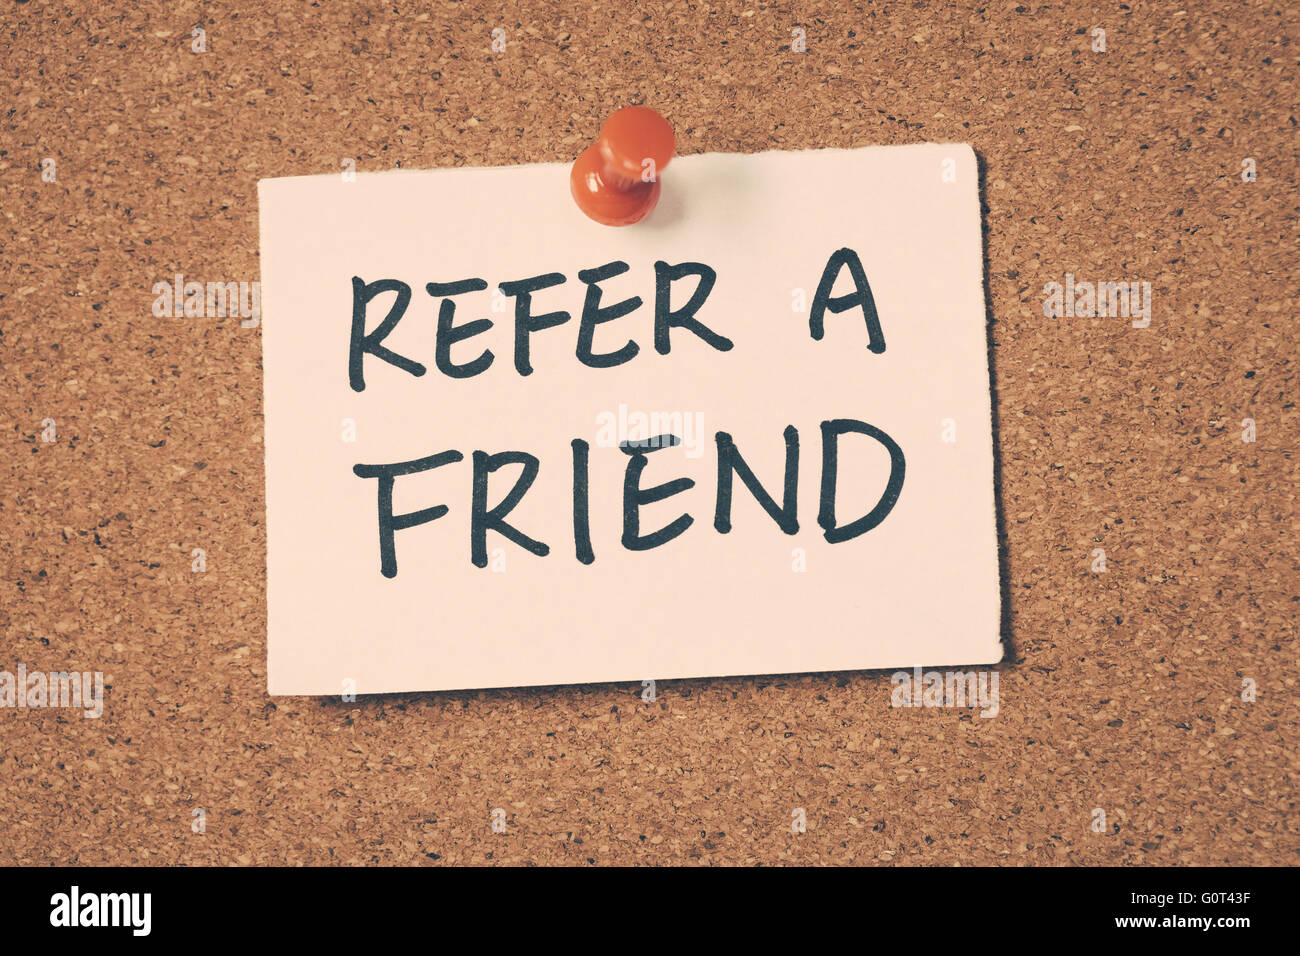 refer a friend - Stock Image